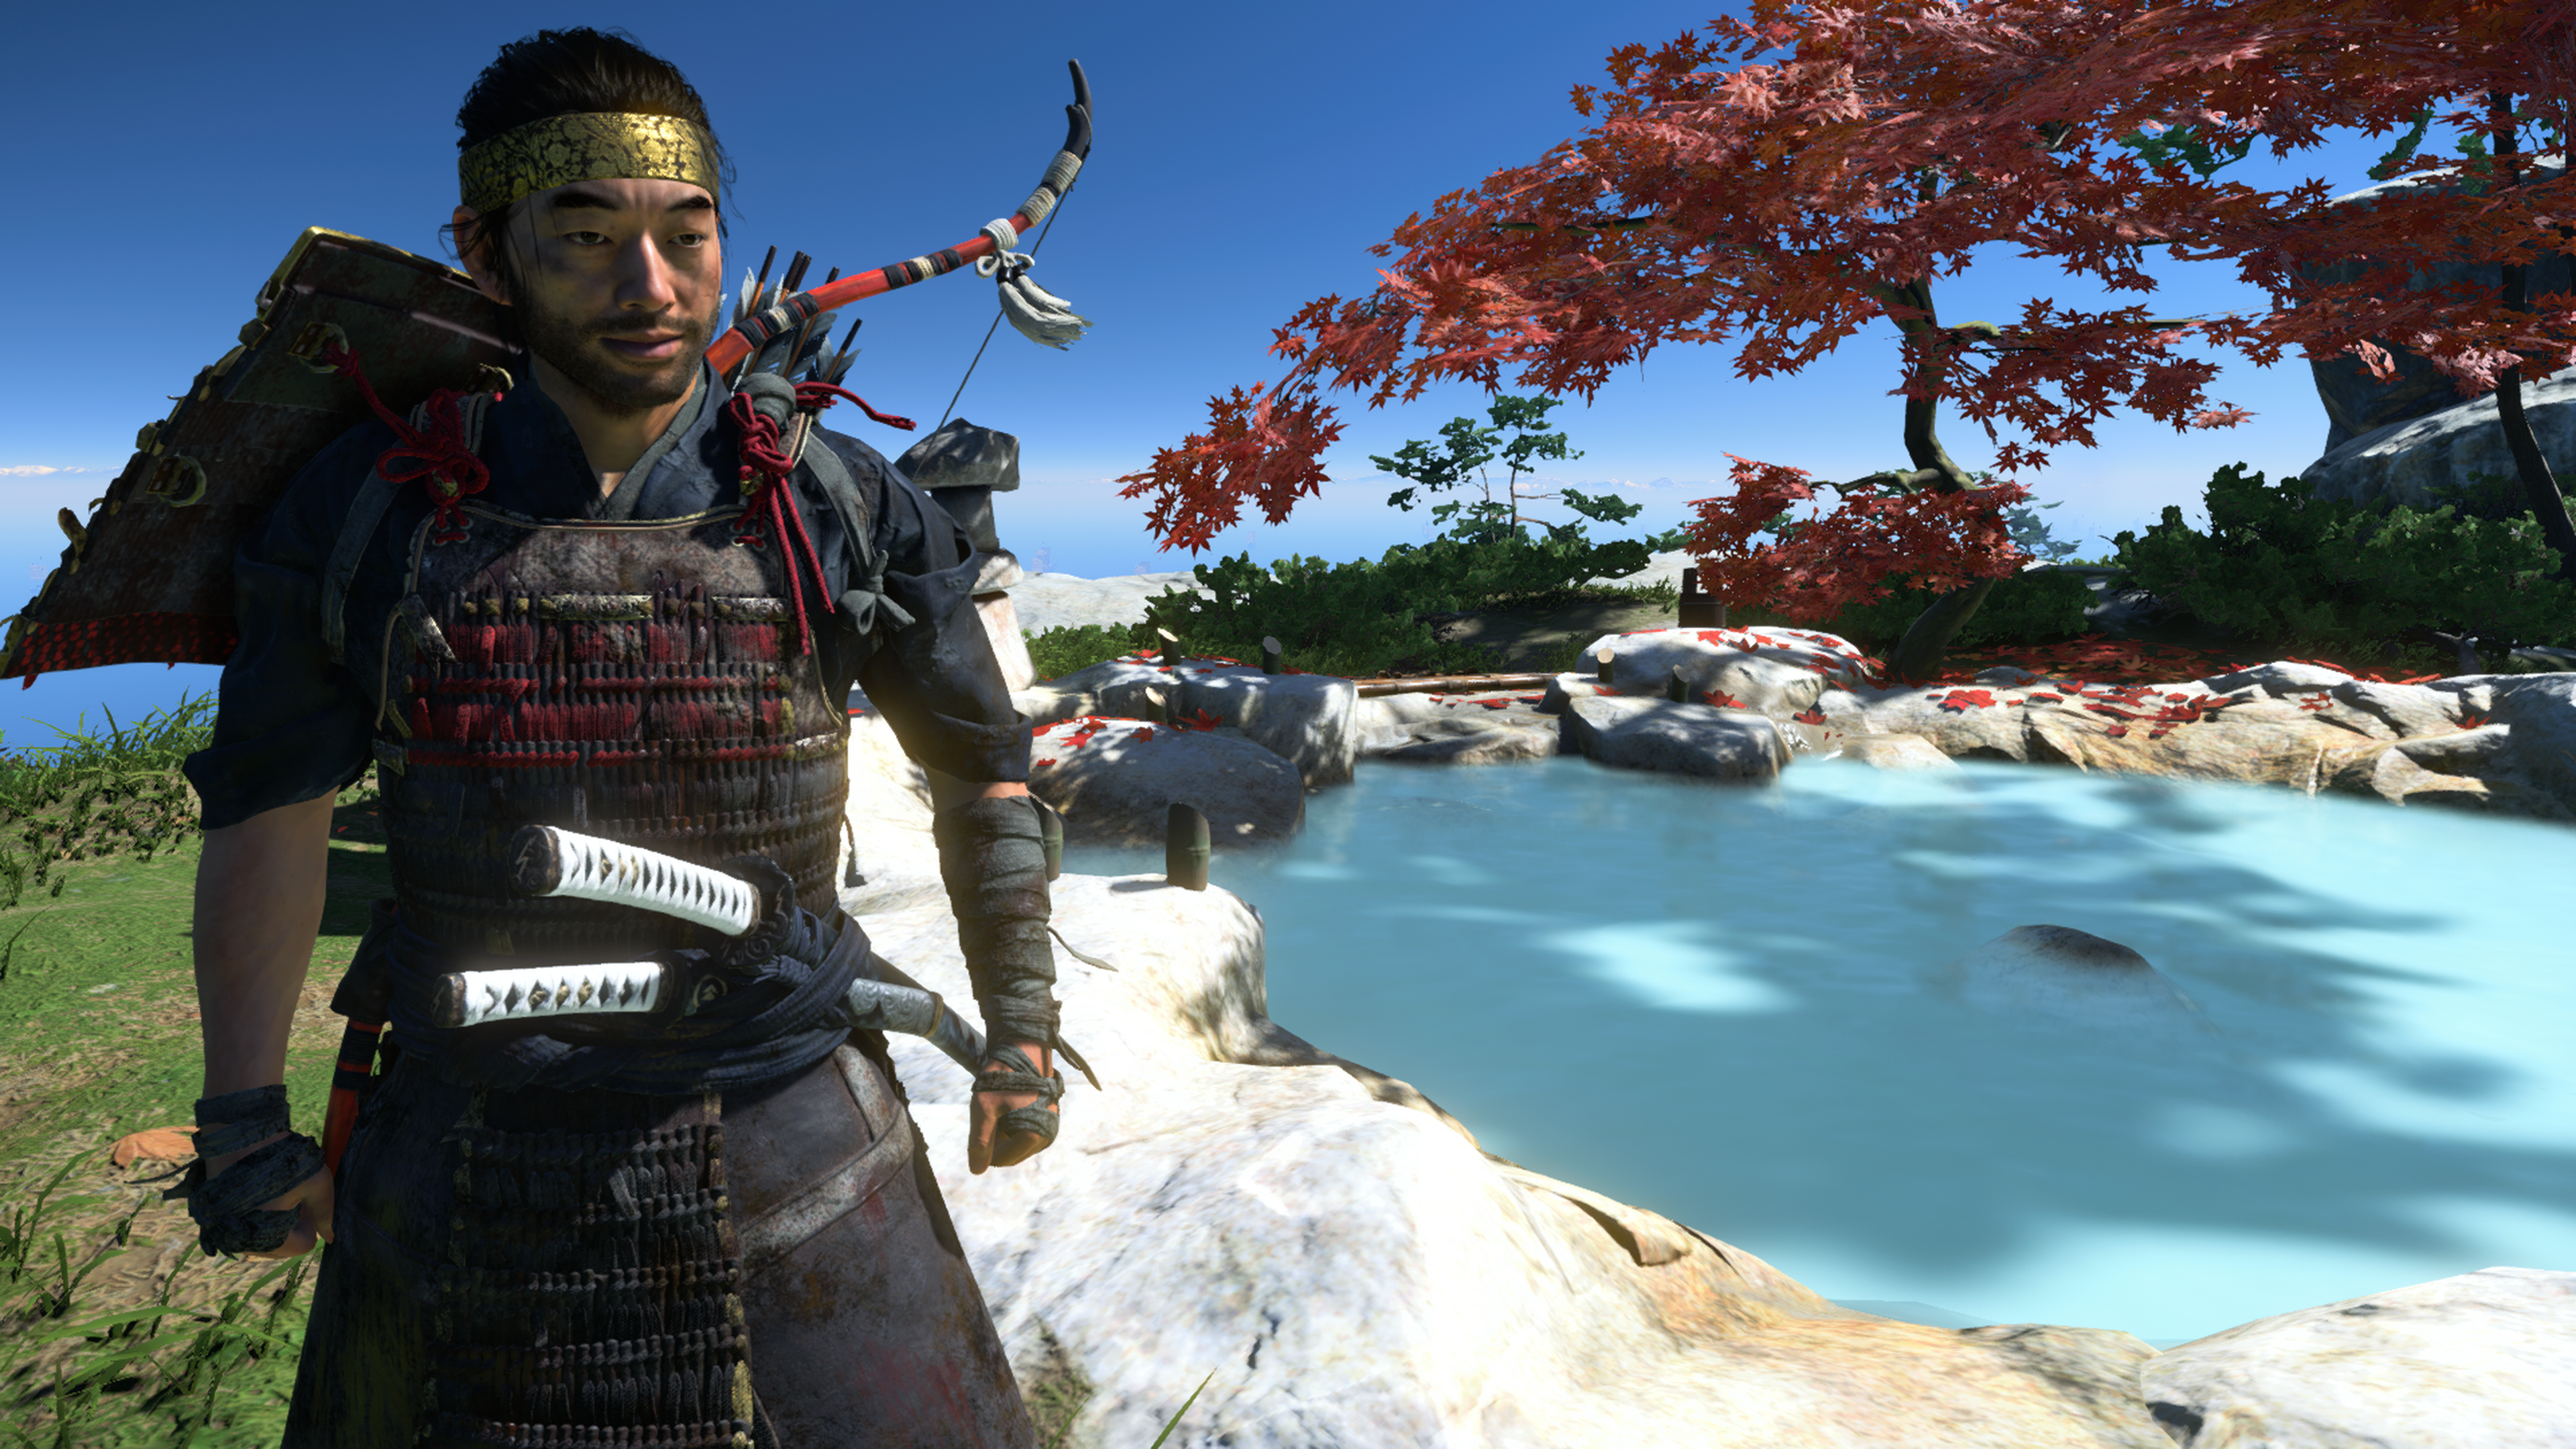 Jin stands next to a hot spring in Ghost of Tsushima beginner's guide